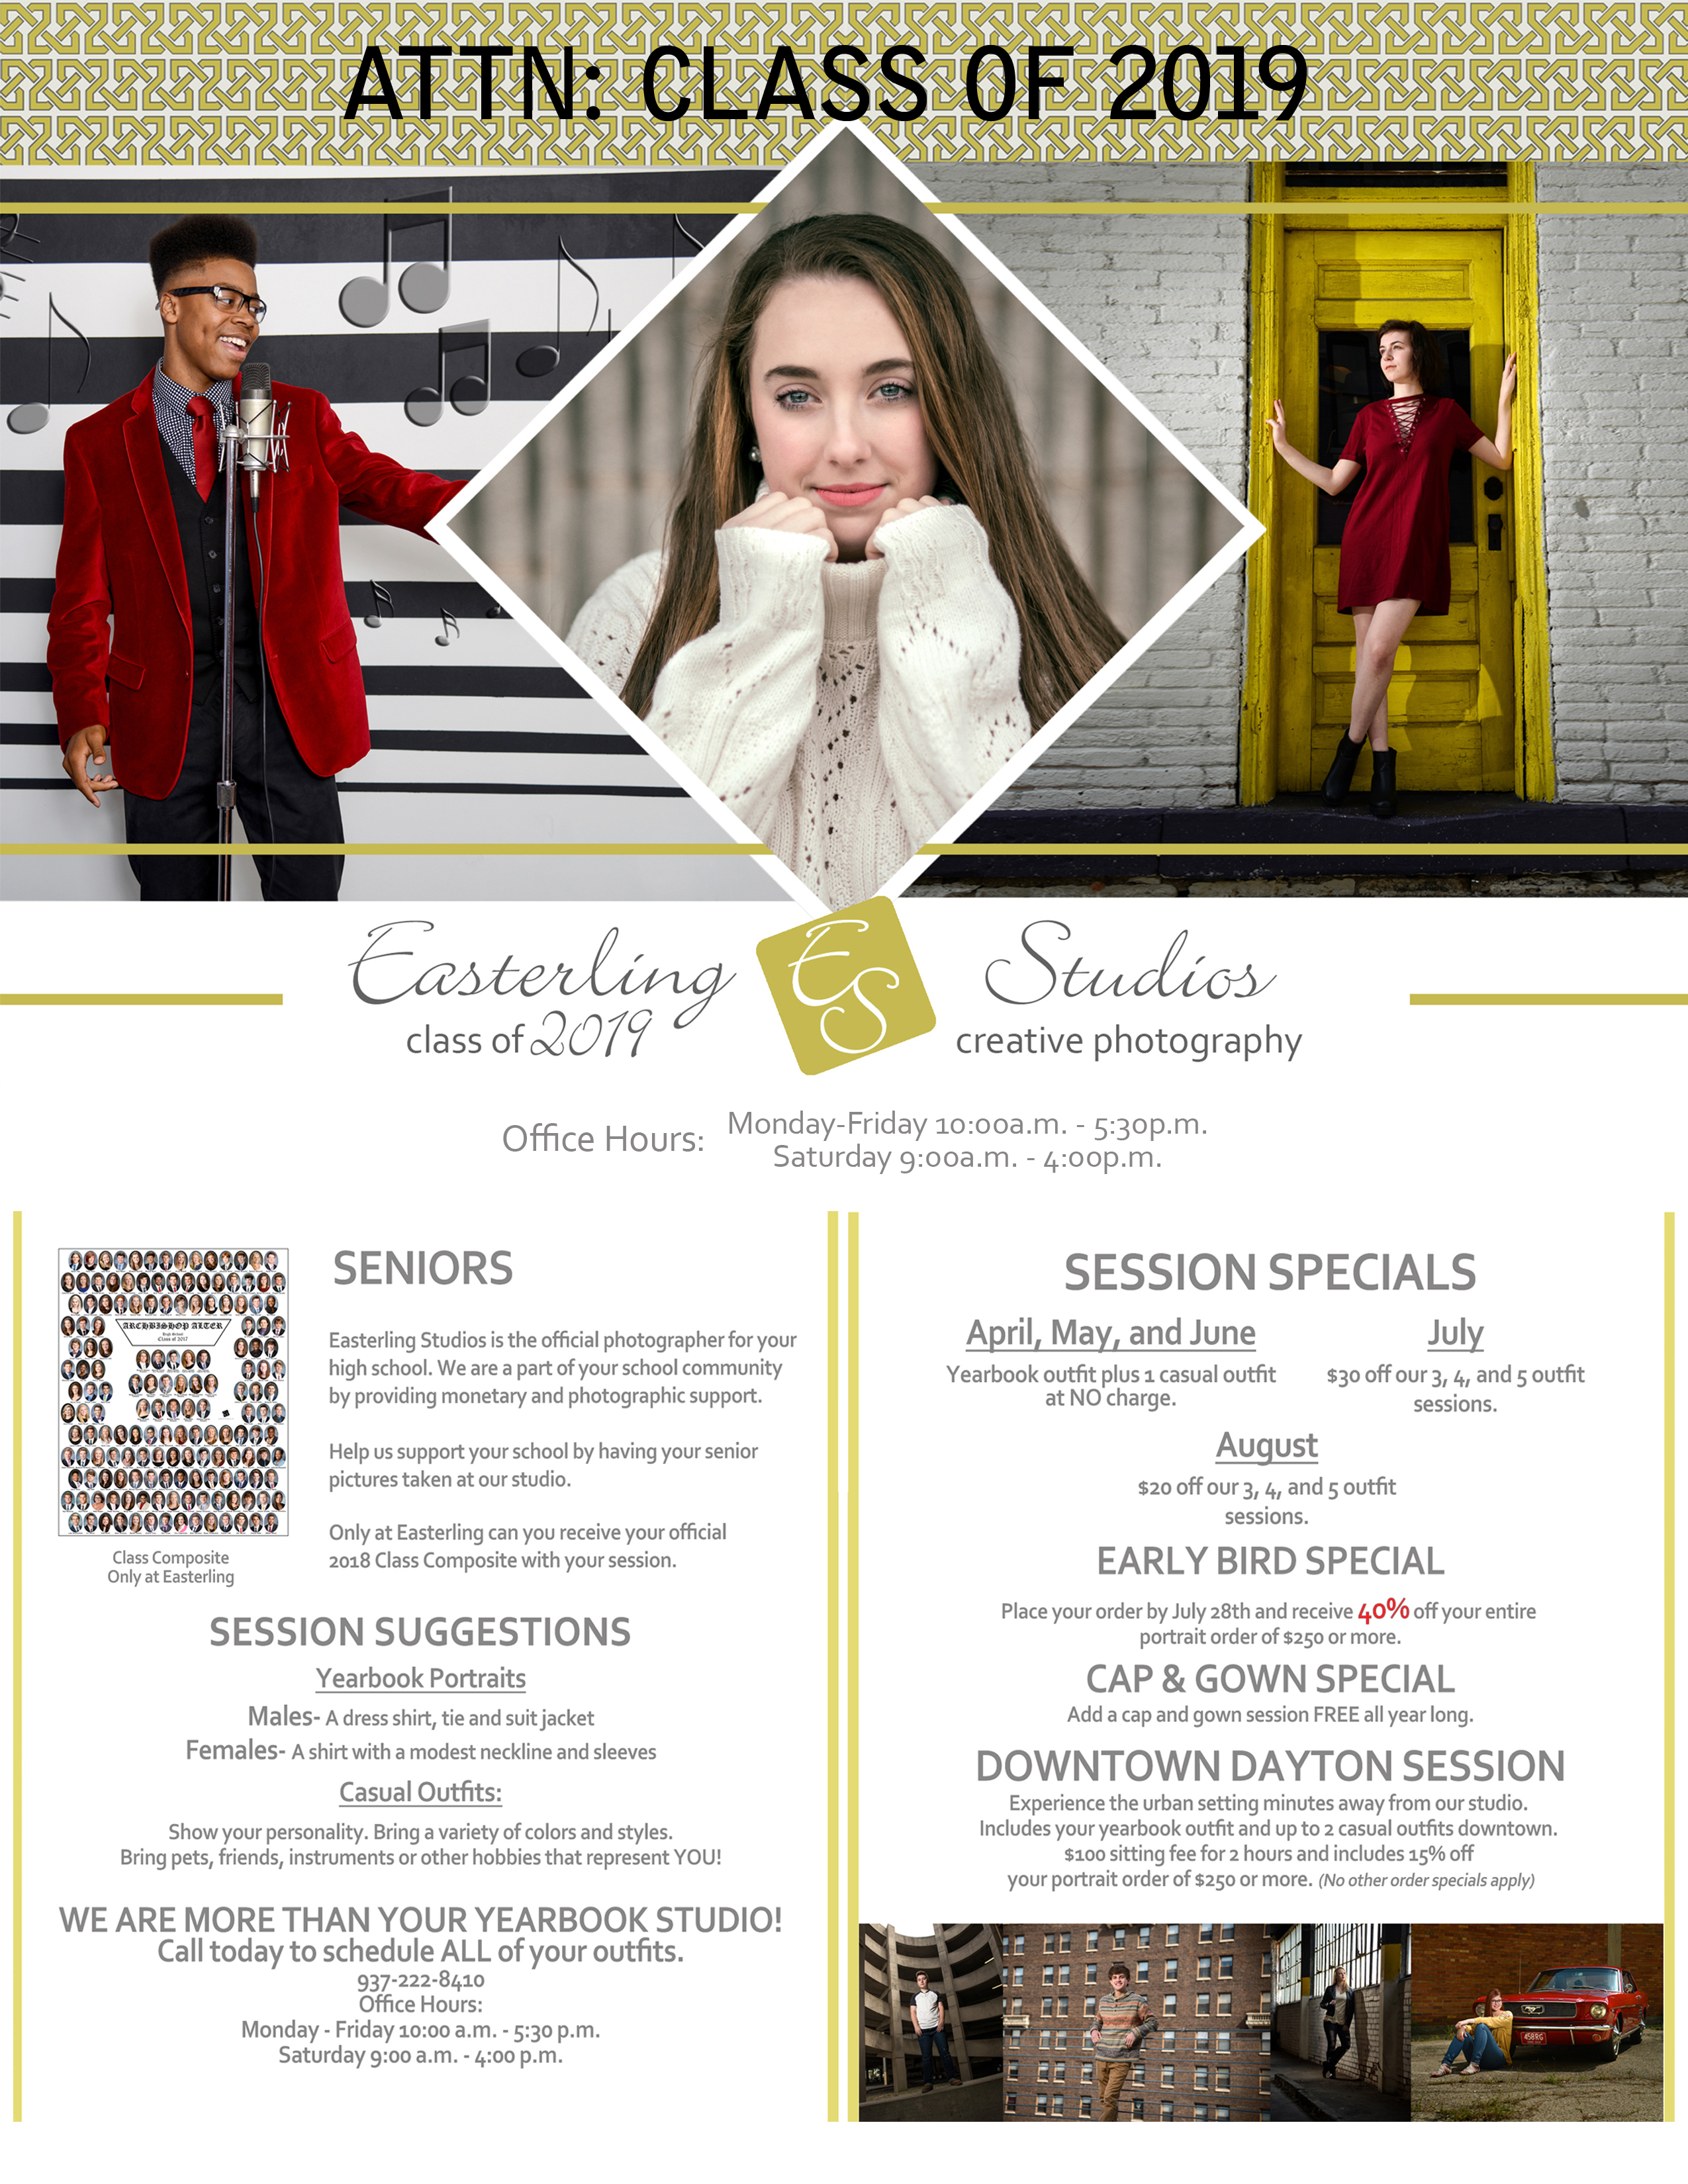 2019 Senior Brochure information